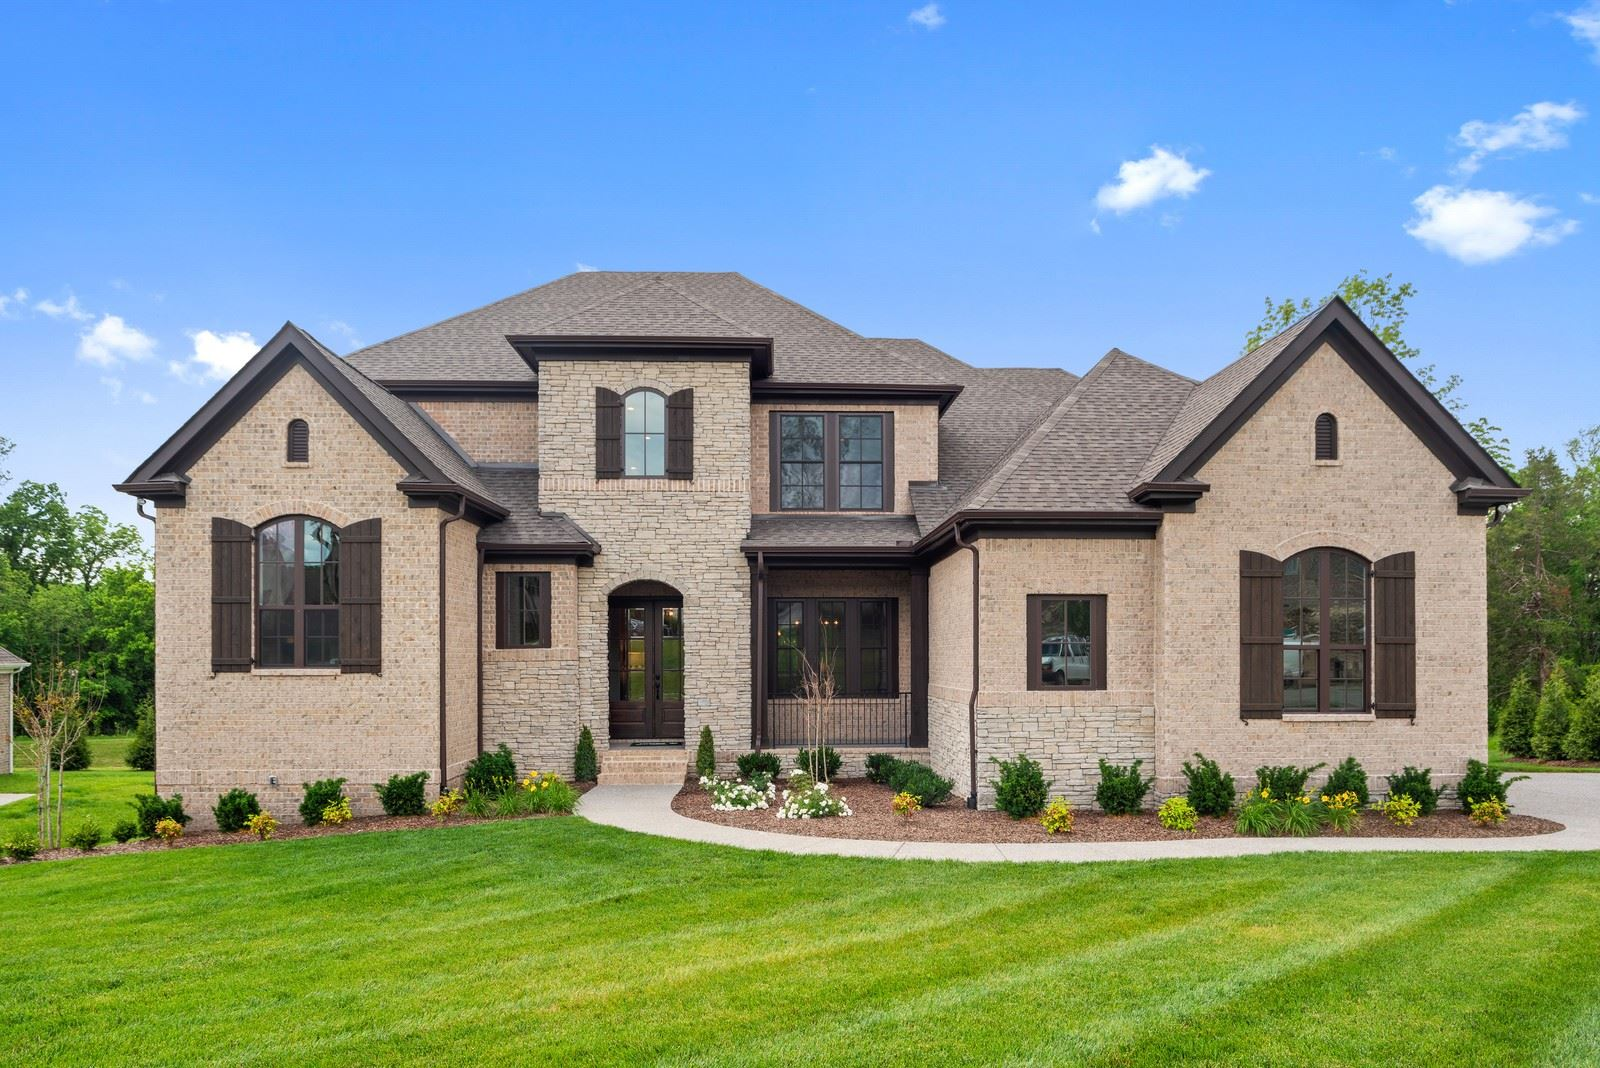 Photo of 1853 Pageantry Circle #106, Brentwood, TN 37027 (MLS # 2149993)